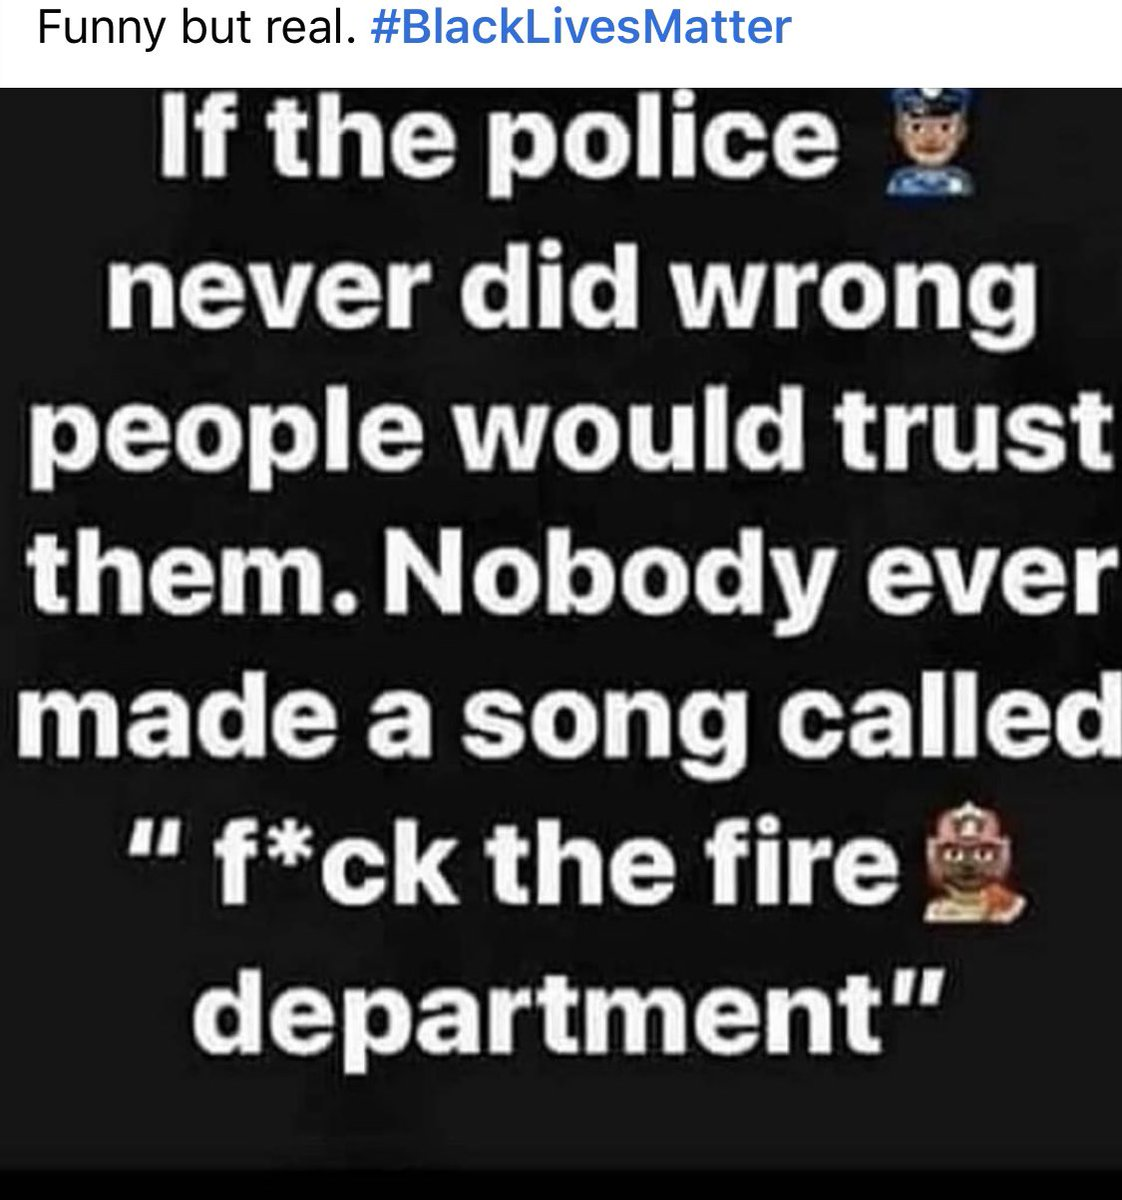 😂😂😂😂 Facts😂😂😂😂